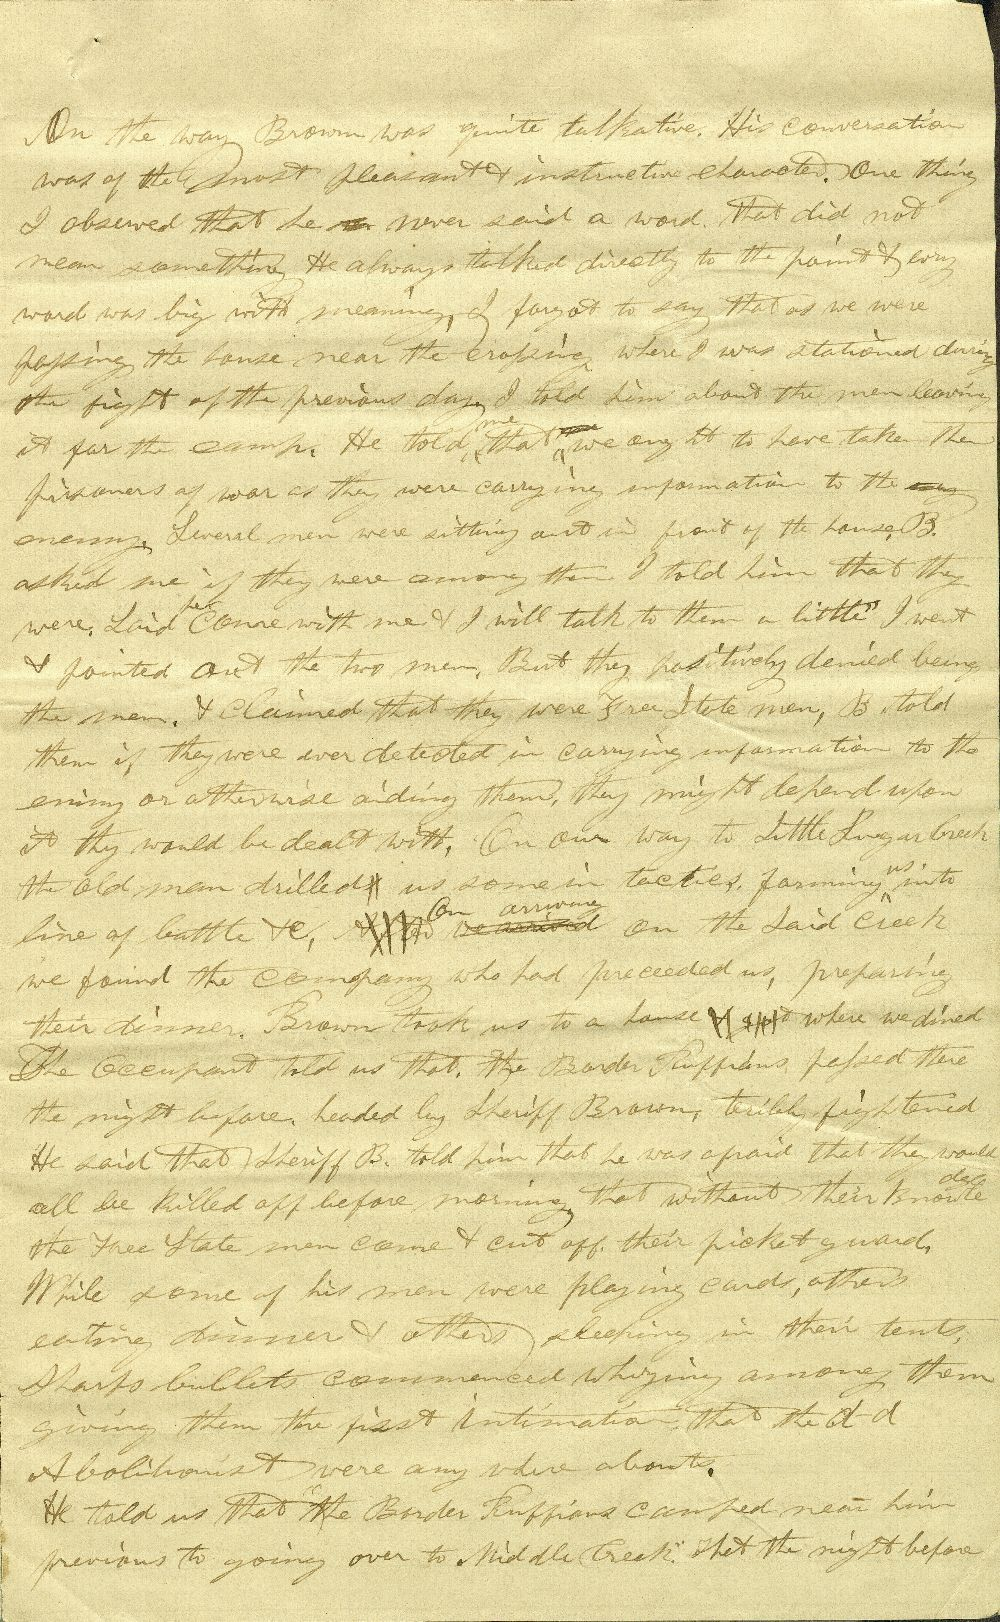 C. G. Allen's response to Redpath and Hinton's call for information about John Brown - 11